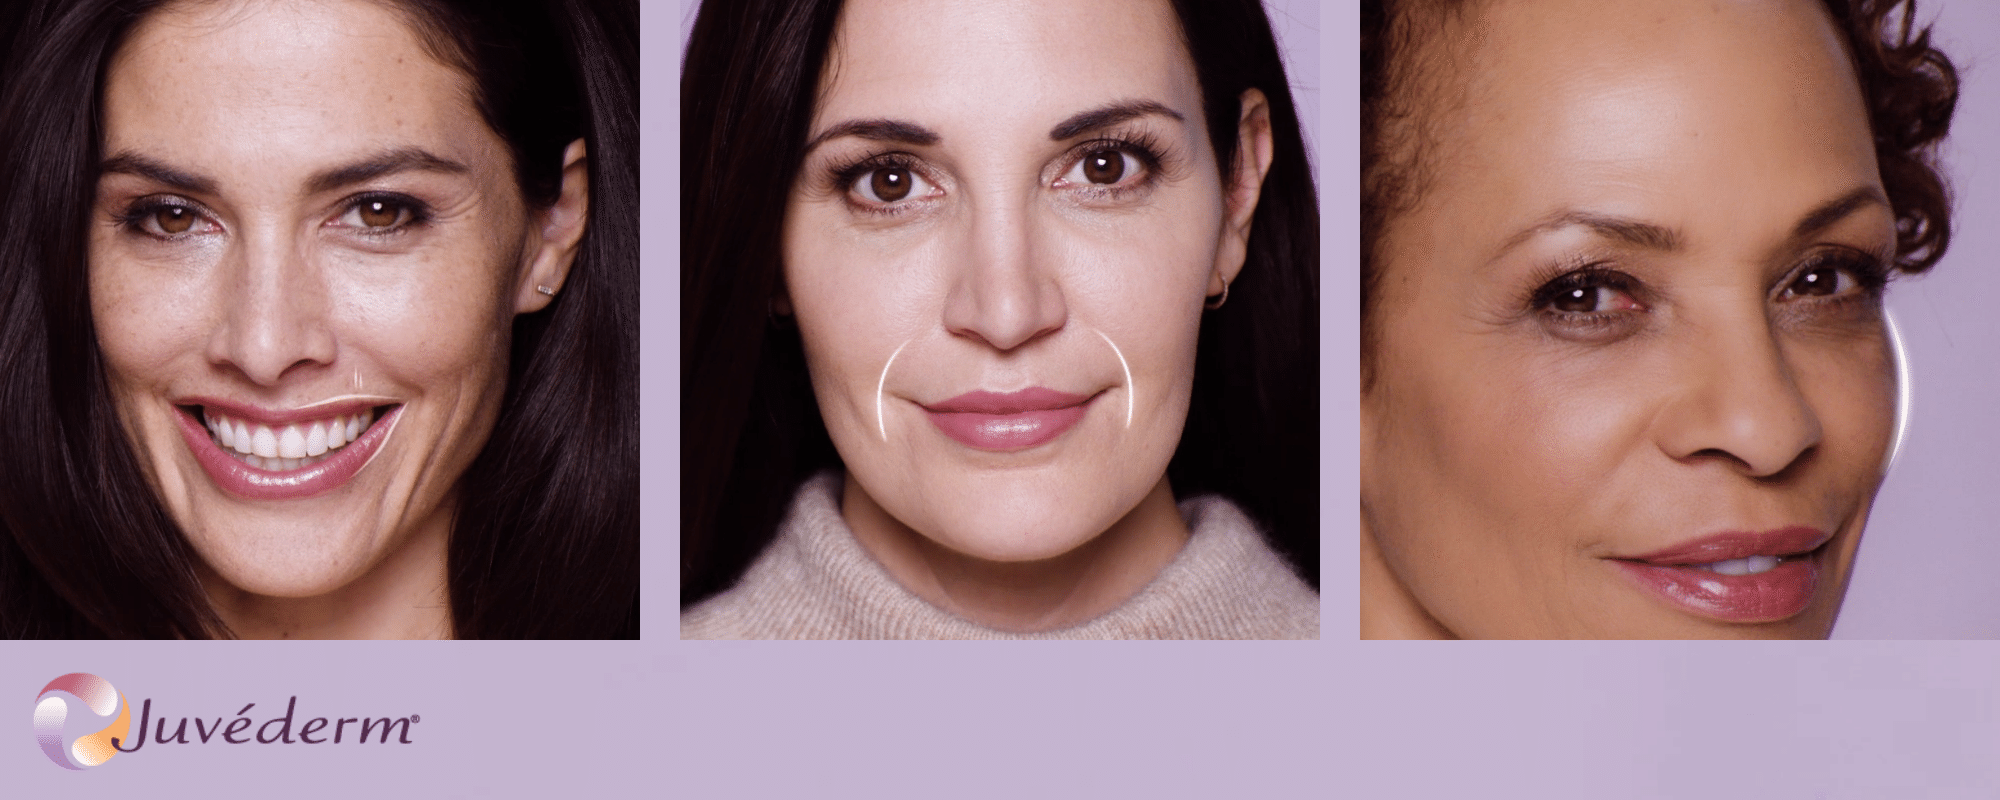 Juvederm - Smooth Fine Lines Around Your Mouth | Senara Health And